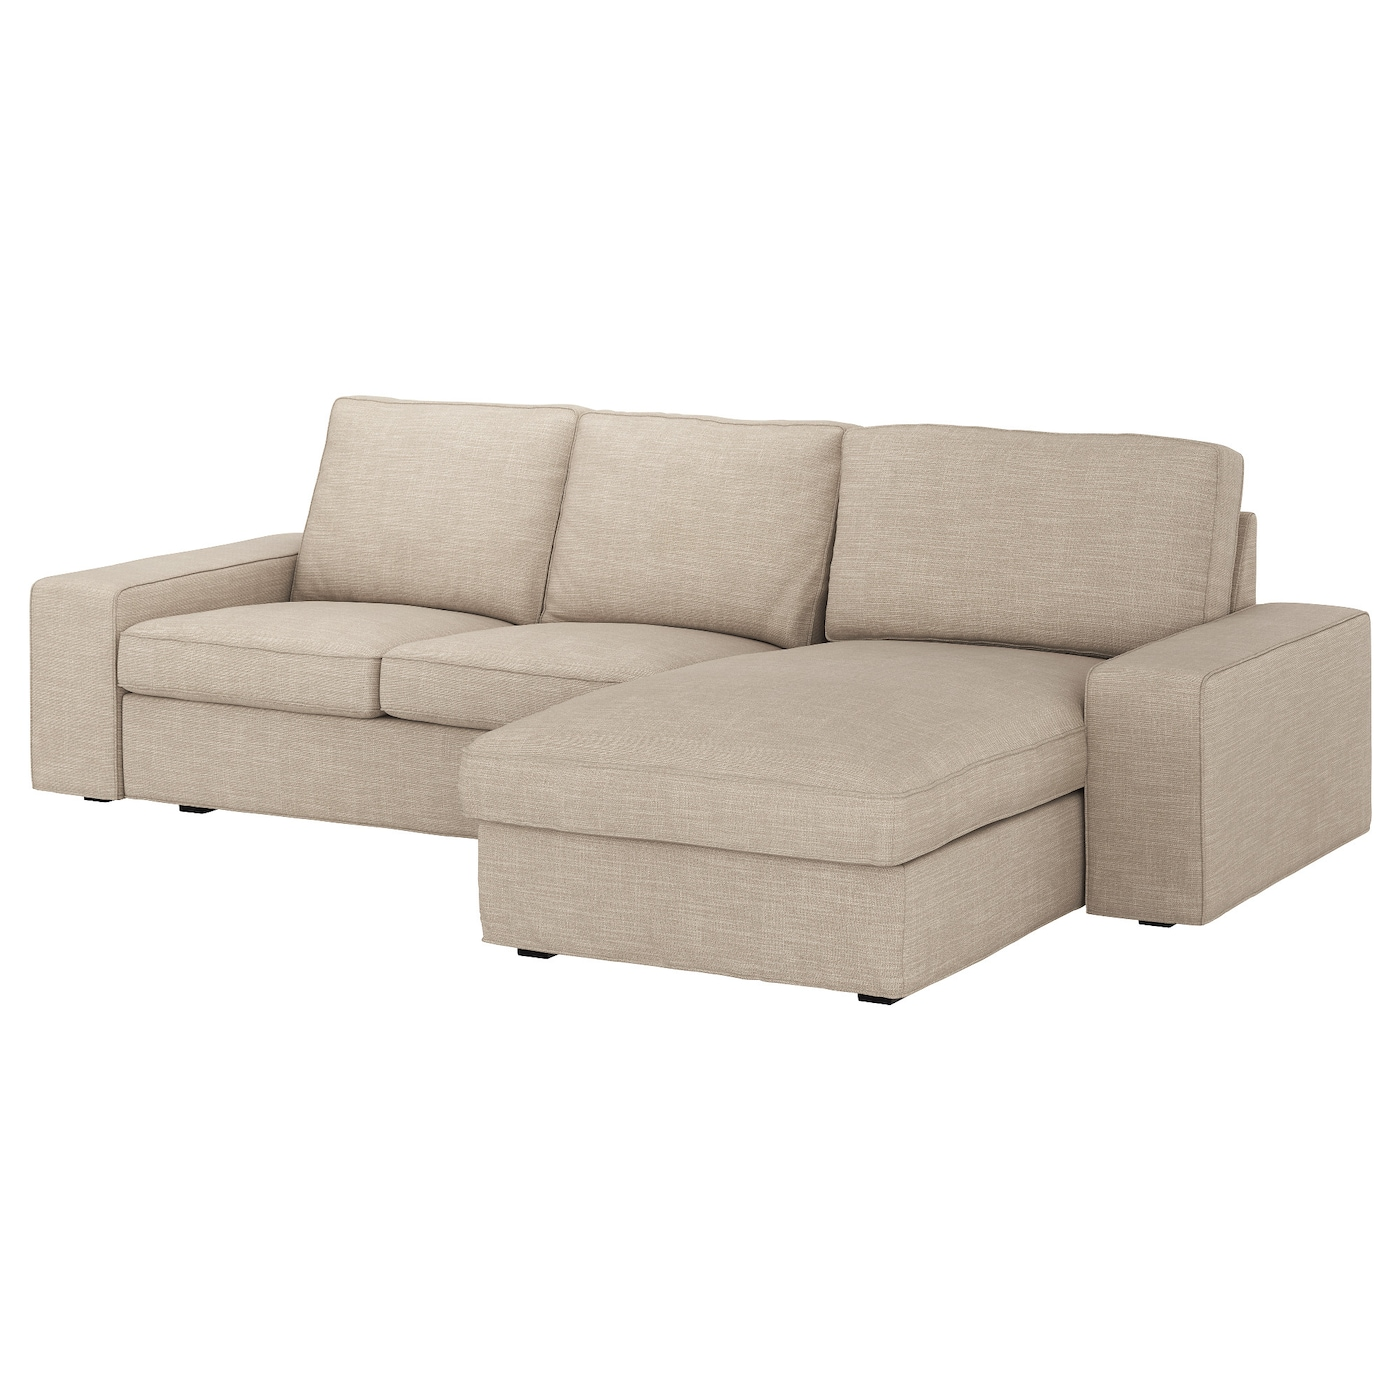 Kivik 3 seat sofa with chaise longue hillared beige ikea - Chaise longue jardin ikea ...